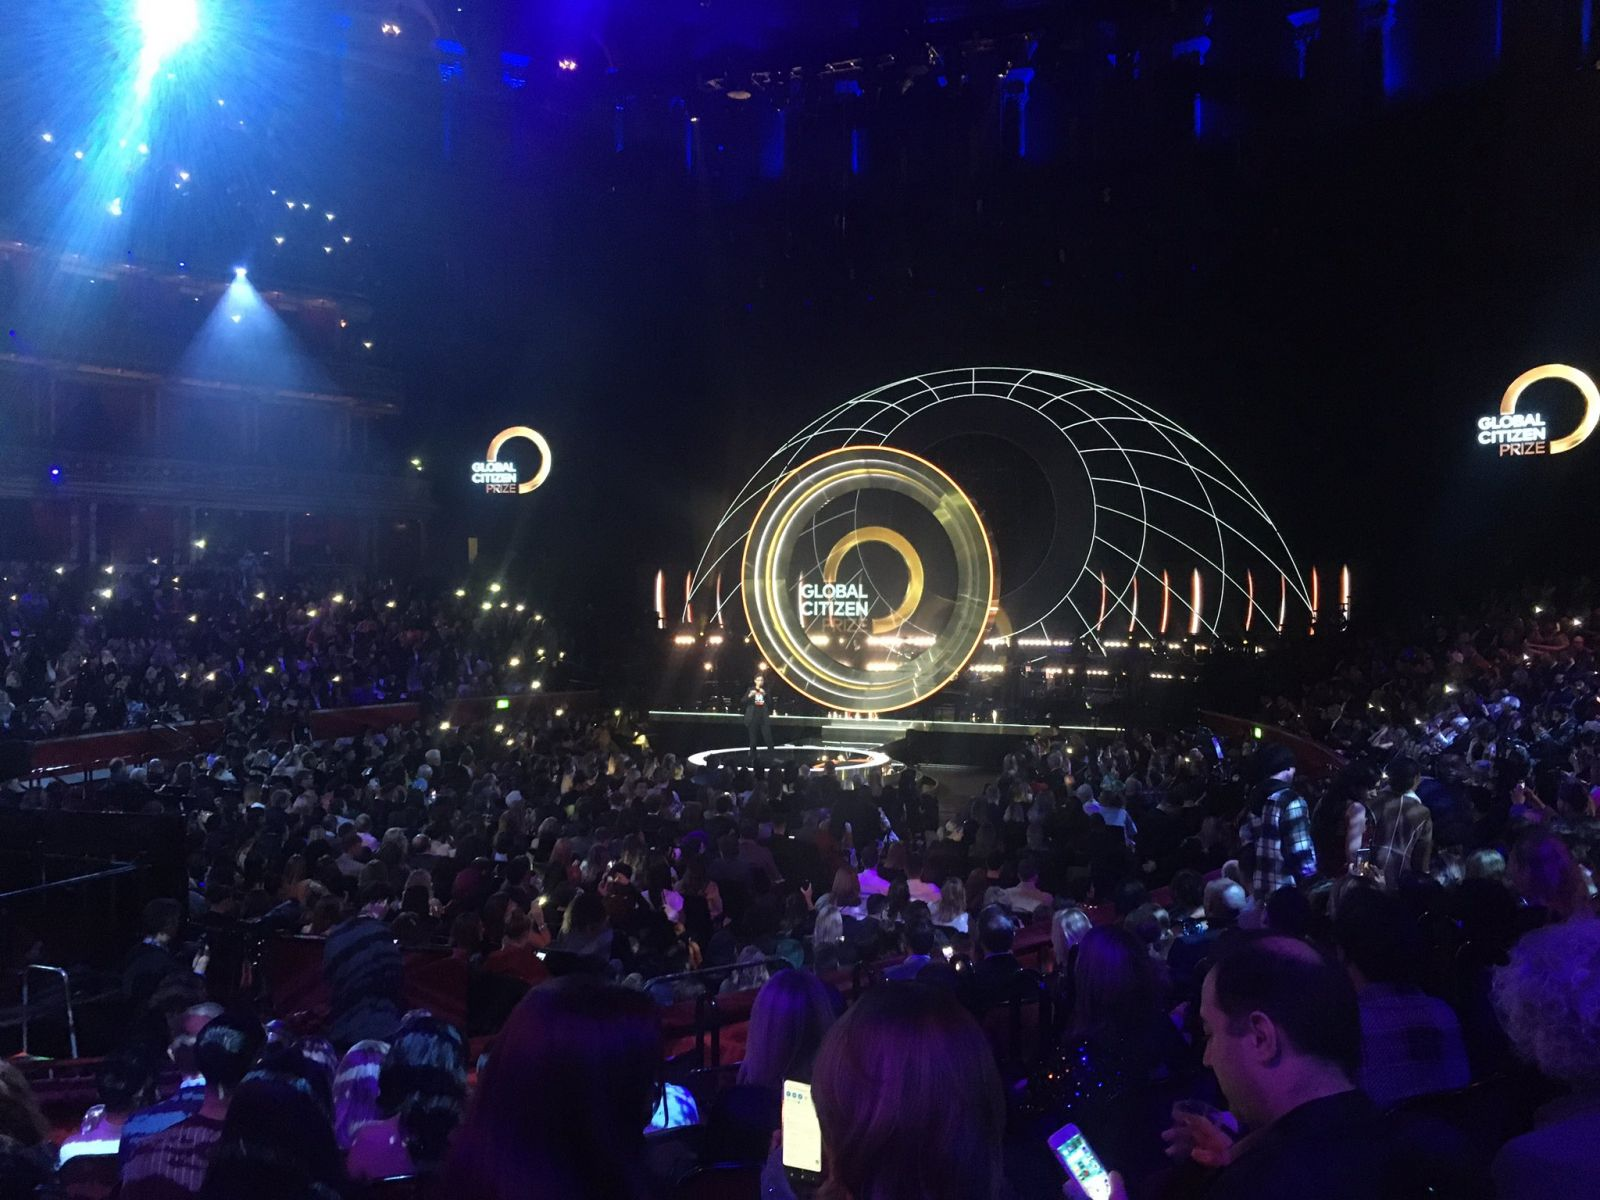 Stage view of the Global Citizen Prize ceremony